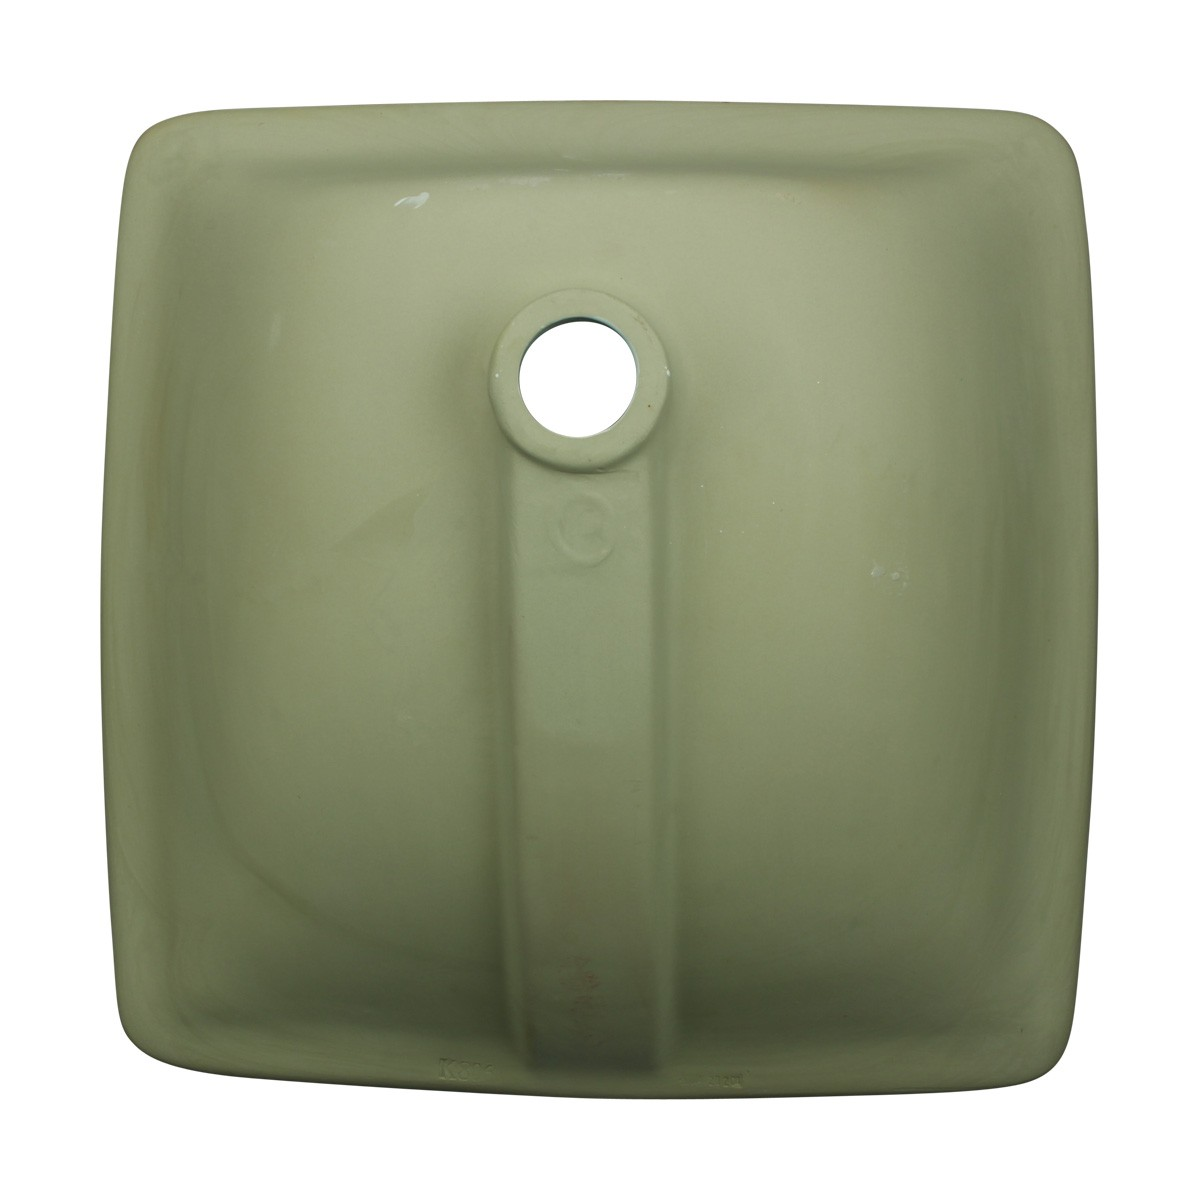 Providence Under Counter White Vessel Sink Overflow bathroom vessel sinks Countertop vessel sink Bathroom Vessel Sink